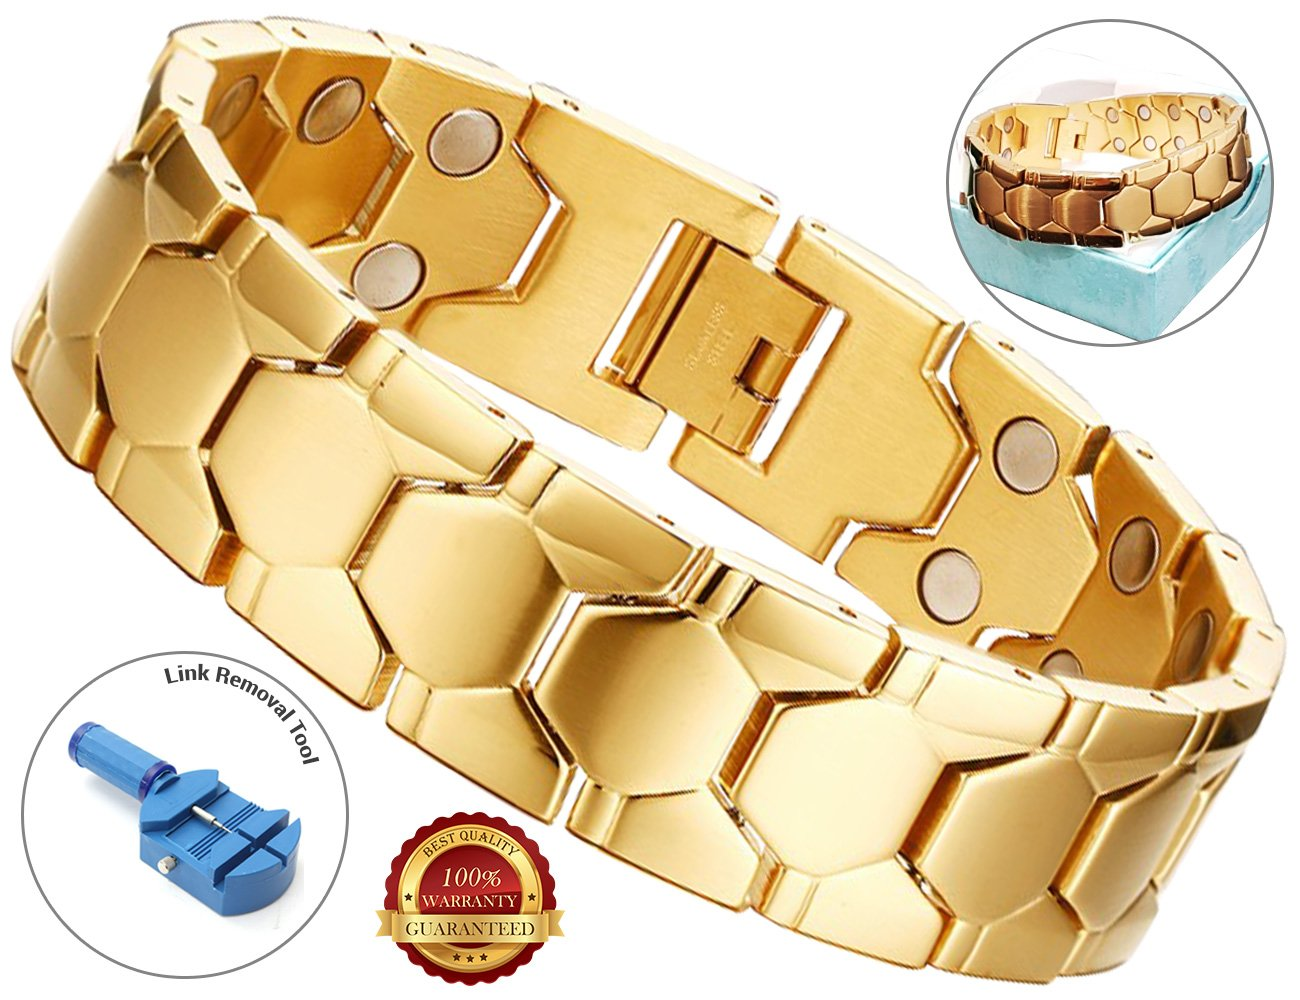 BisLinks® Magnetic Bracelet Gold For Men & Women Titatnium Arthritis Carpal Tunnel Therapy Chronic Pain Relief Health Negative Ion Energy Element (3000 Gauss Each Magnet) + FREE LINK REMOVAL TOOL